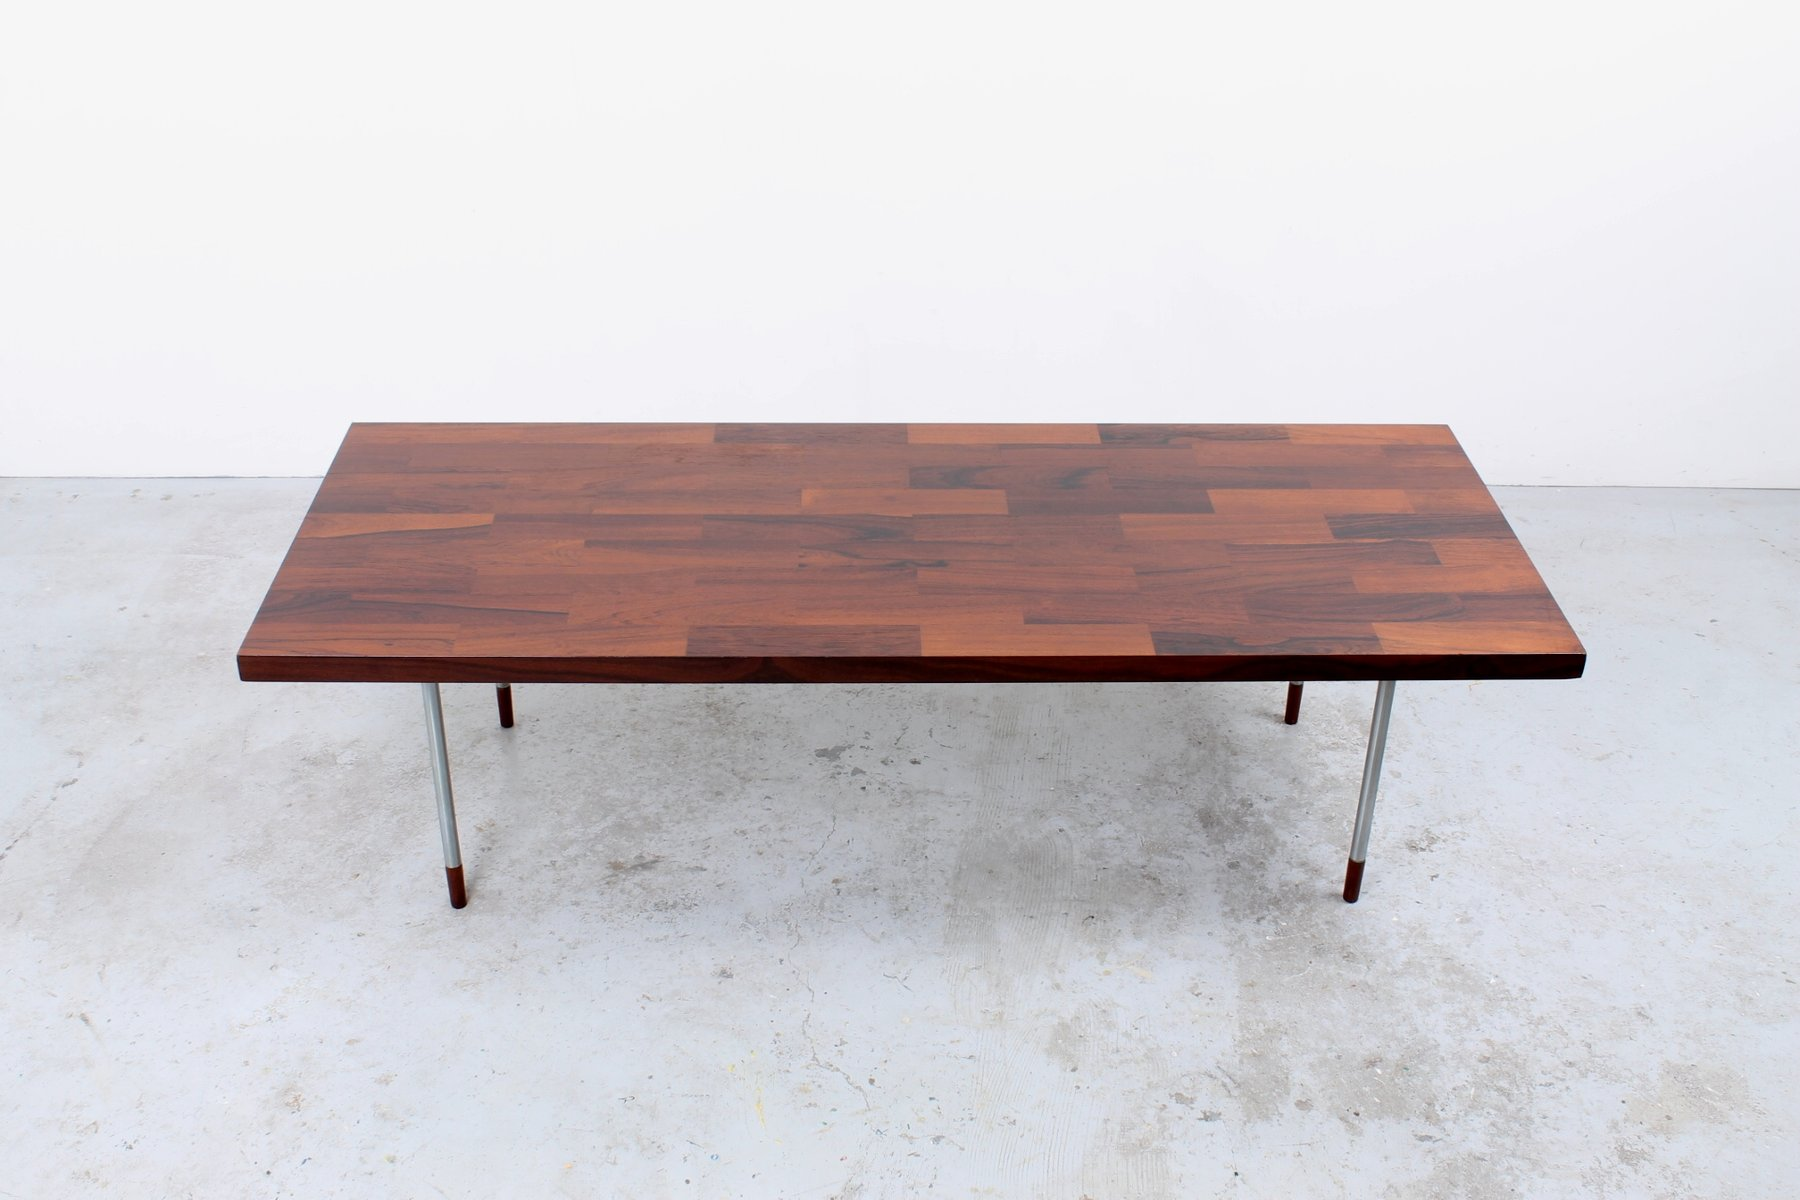 Vintage Coffee Table With Rosewood Inlay From Fristho For Sale At Pamono